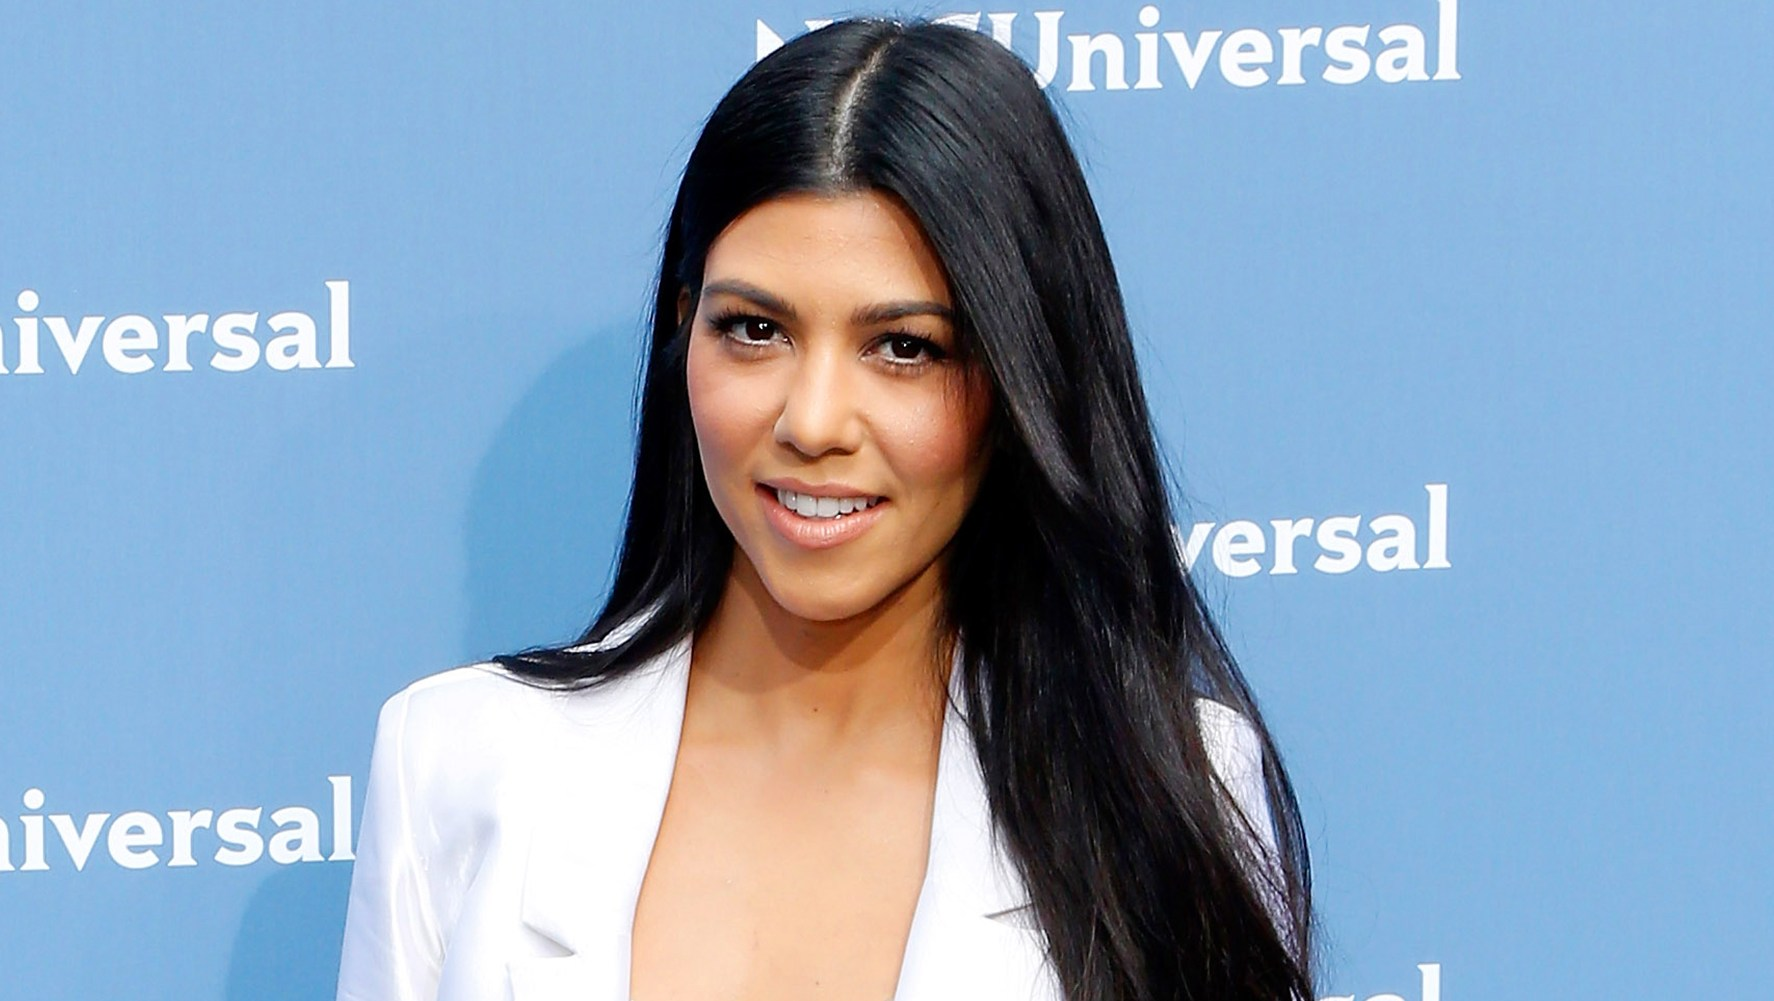 Kourtney Throws Sons a Fortnite-Themed Birthday Party